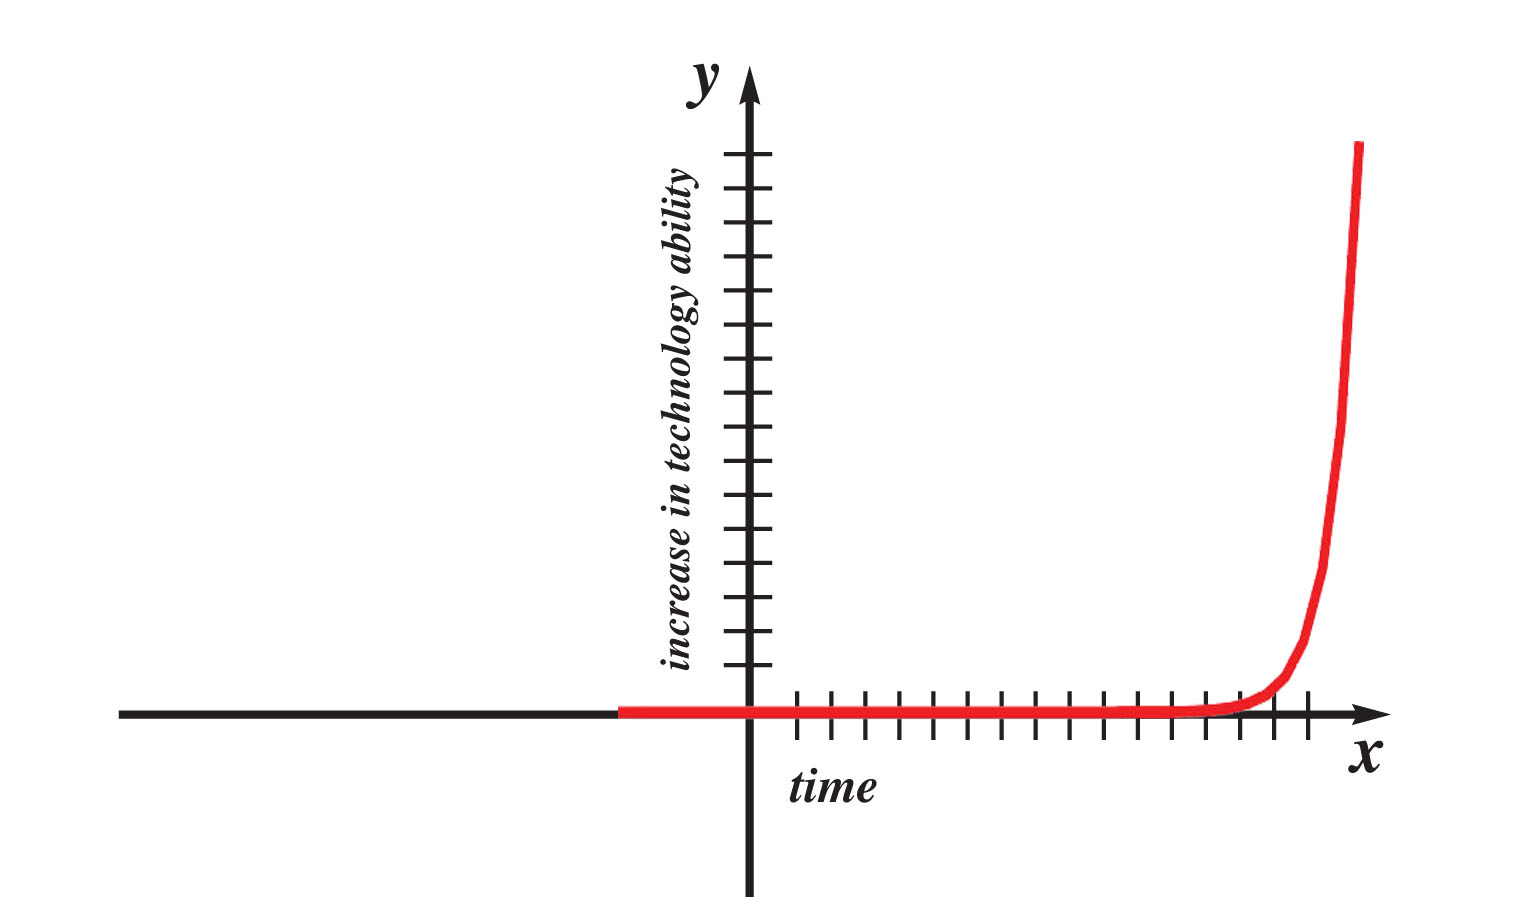 Graph showing the increase in technology ability (y-axis) over time (x-axis). This graph depicts exponential change as being flat across the x axis for a very long period of time—but then that exponential change goes sharply vertical on the y axis suddenly after time.